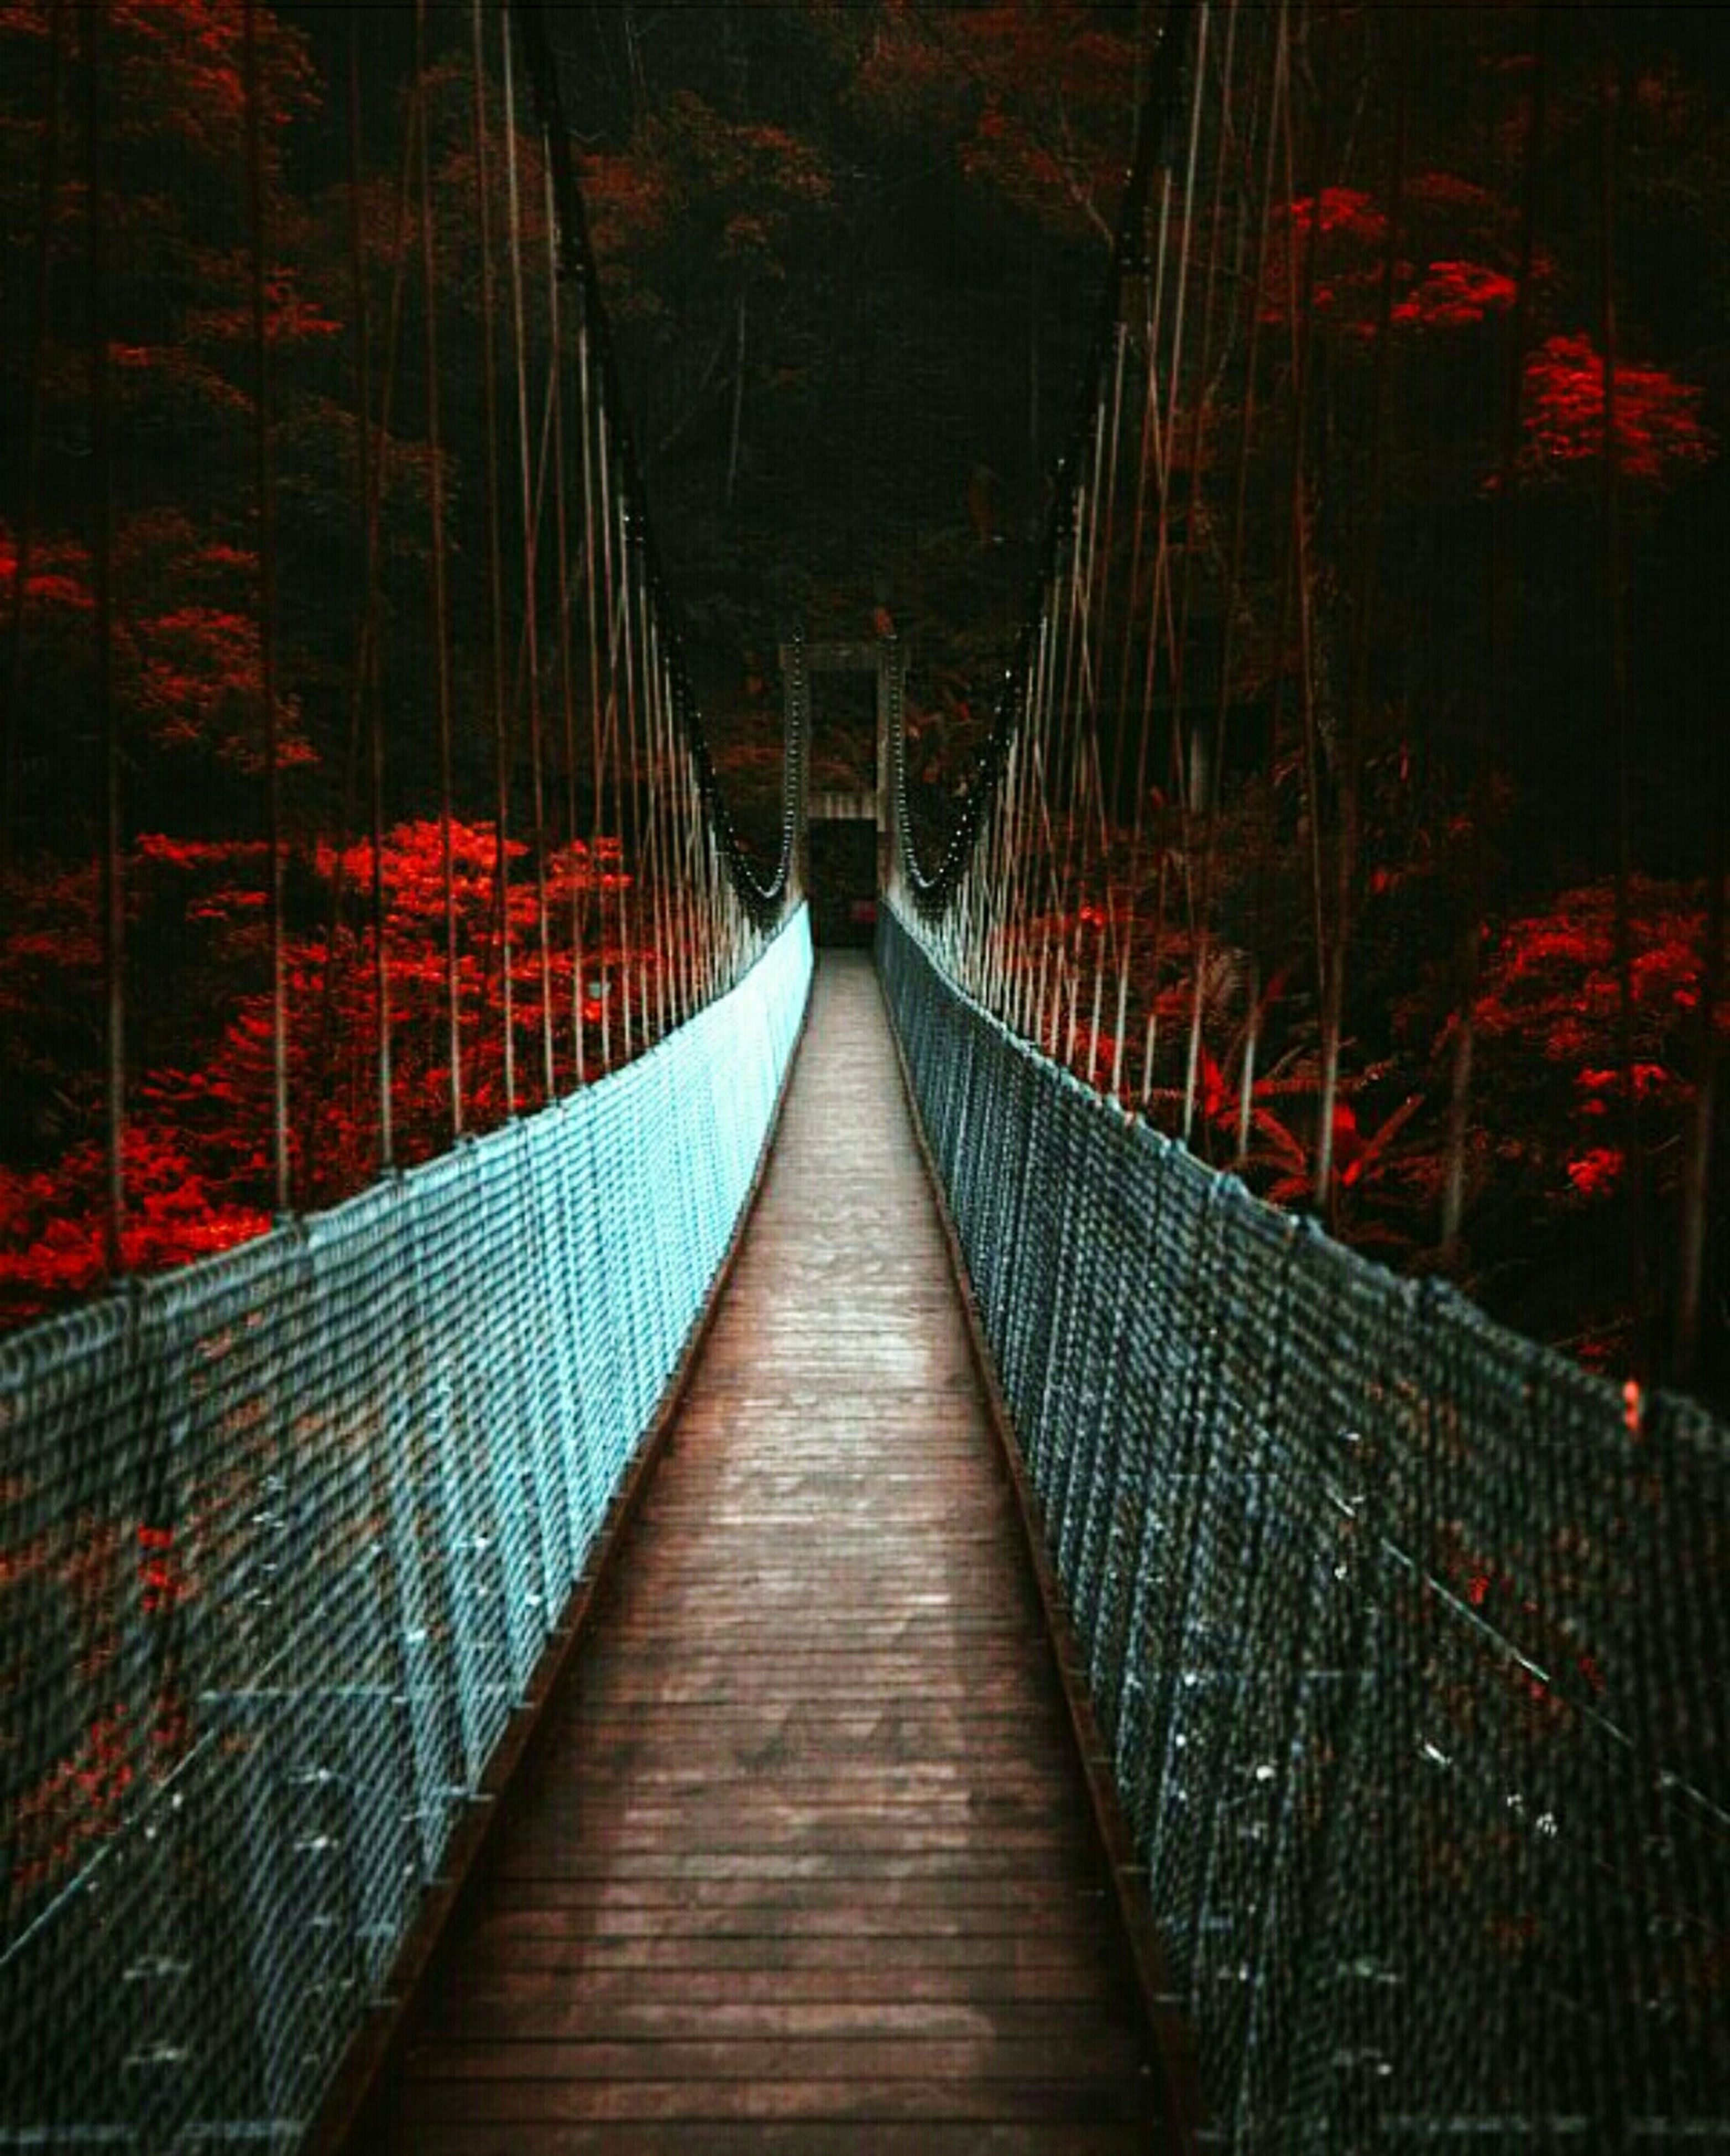 built structure, architecture, the way forward, connection, bridge - man made structure, footbridge, railing, diminishing perspective, bridge, water, tree, metal, vanishing point, no people, night, red, outdoors, illuminated, building exterior, reflection